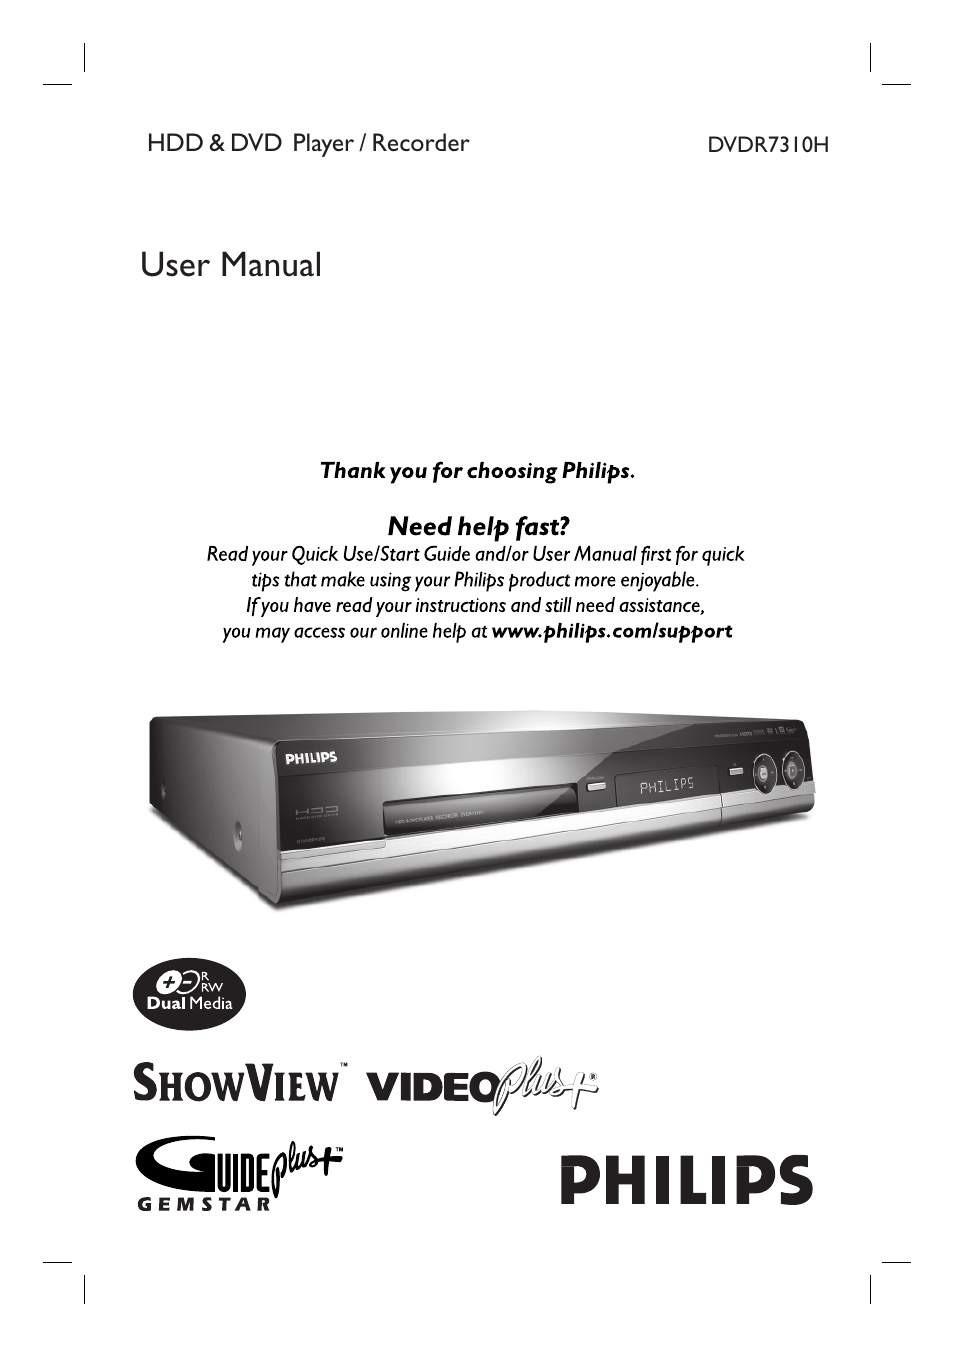 philips dvdr7310h user manual 98 pages rh manualsdir com philips dvdr3475 user manual philips dvdr3475 user manual